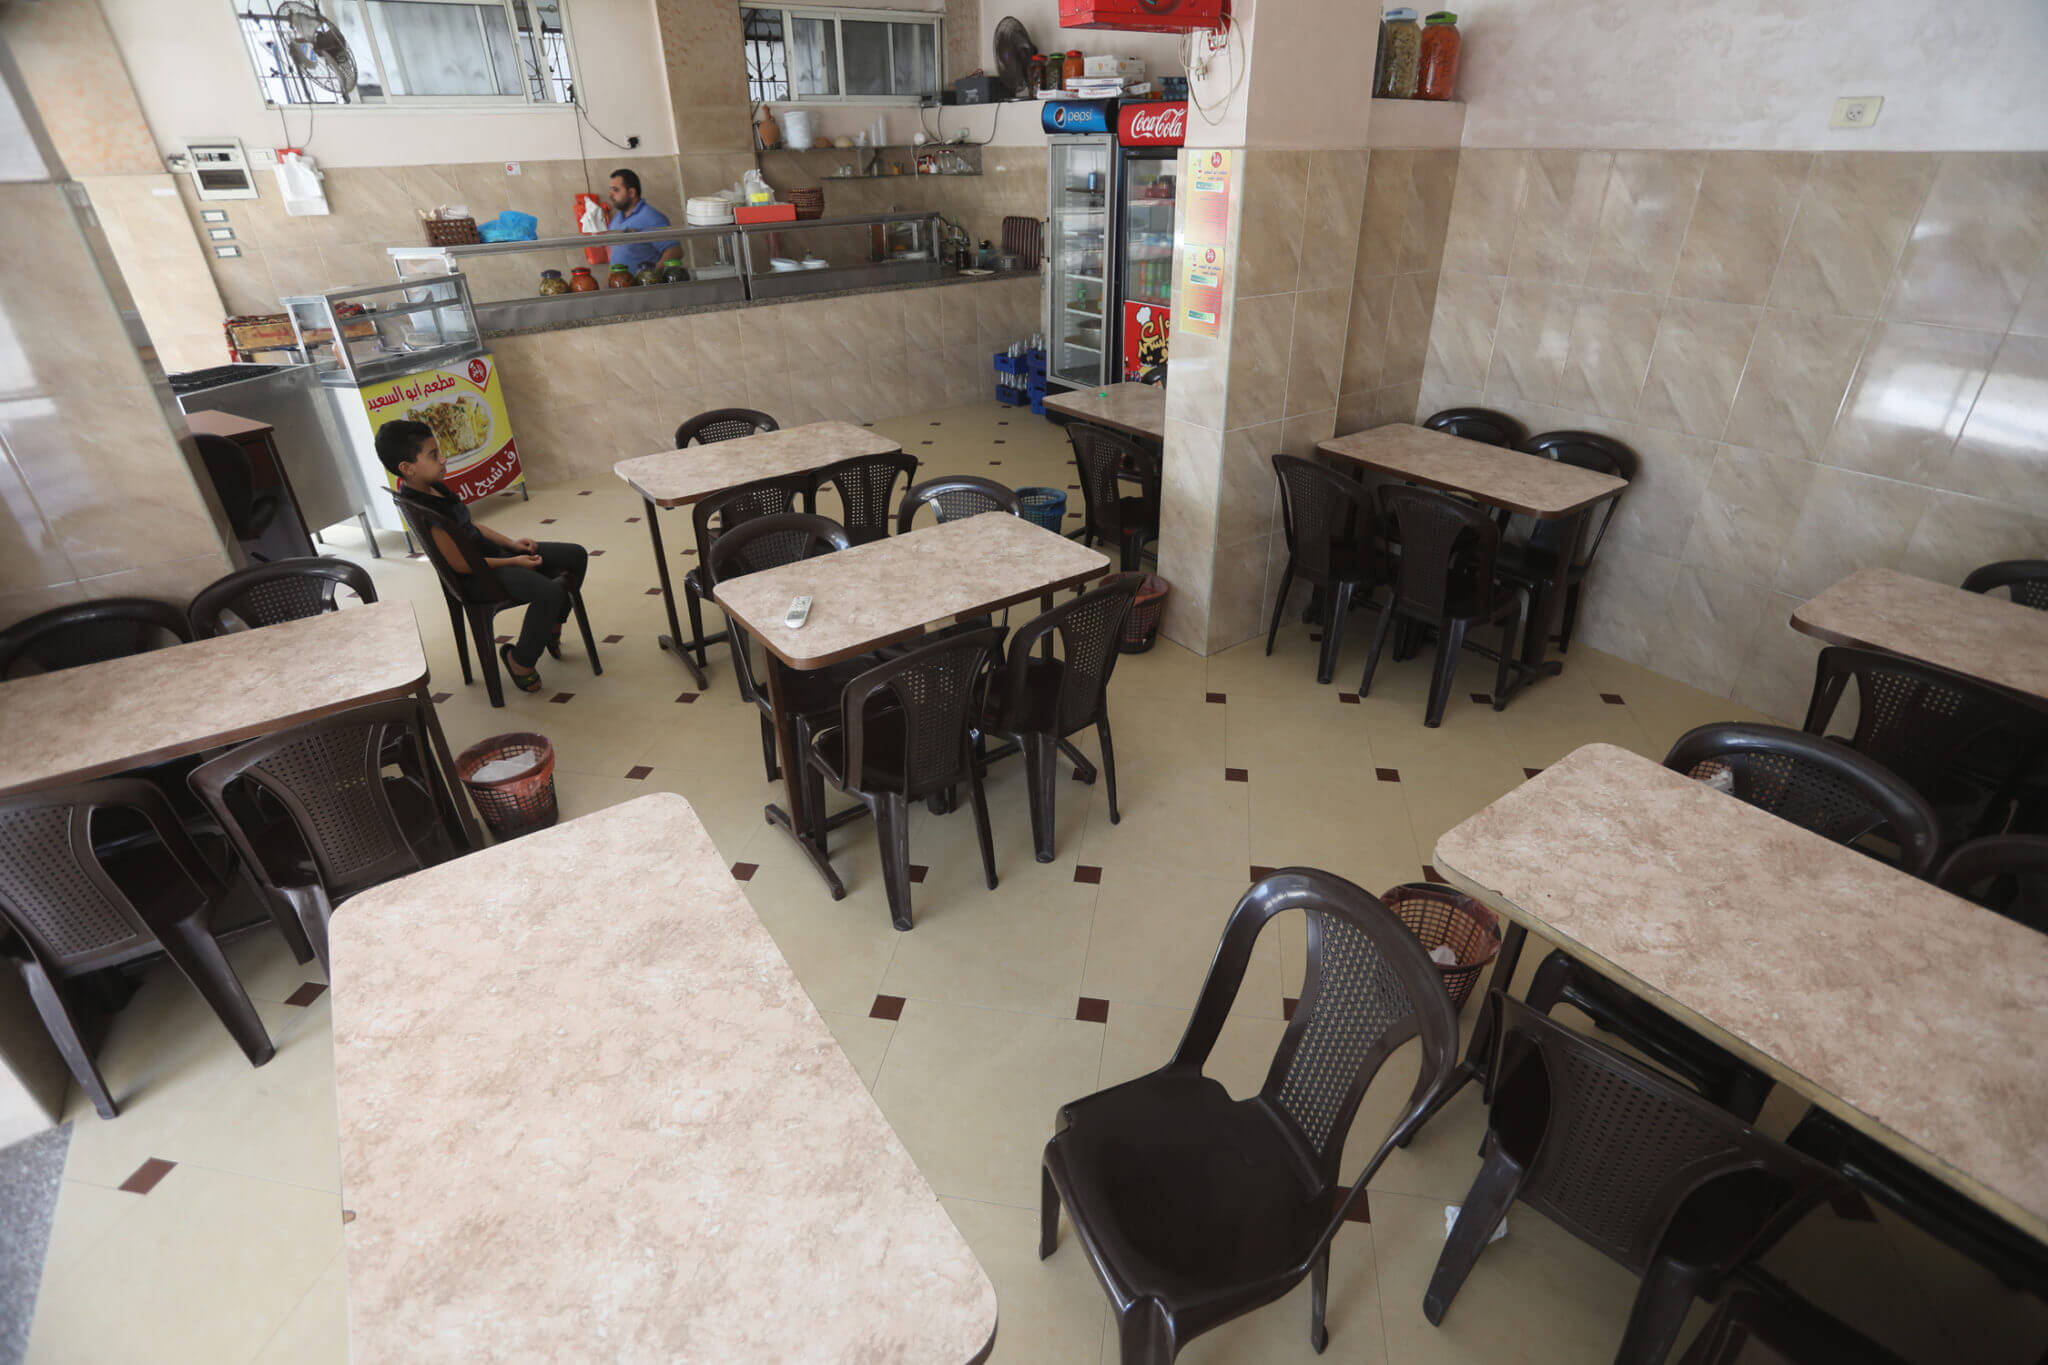 One of the most popular falafel and hummus restaurants in Gaza is supposed to be full of customers in the morning